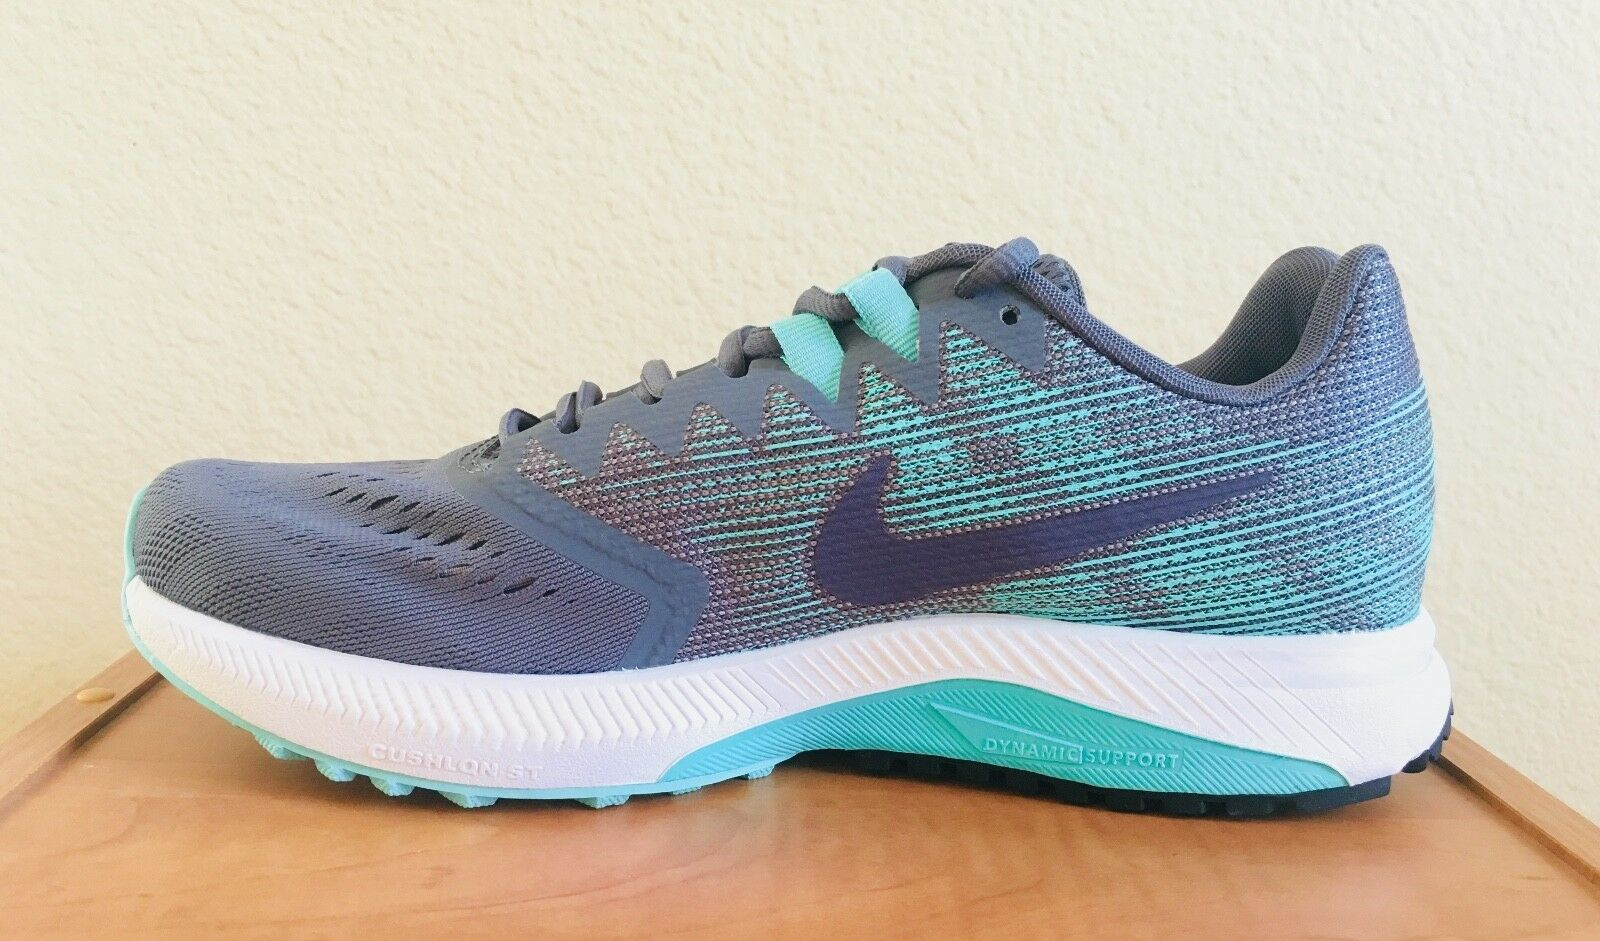 Nike Women's Zoom Span 2 Running shoes Carbon Turquoise Raisin Sz 8.5 909007-004